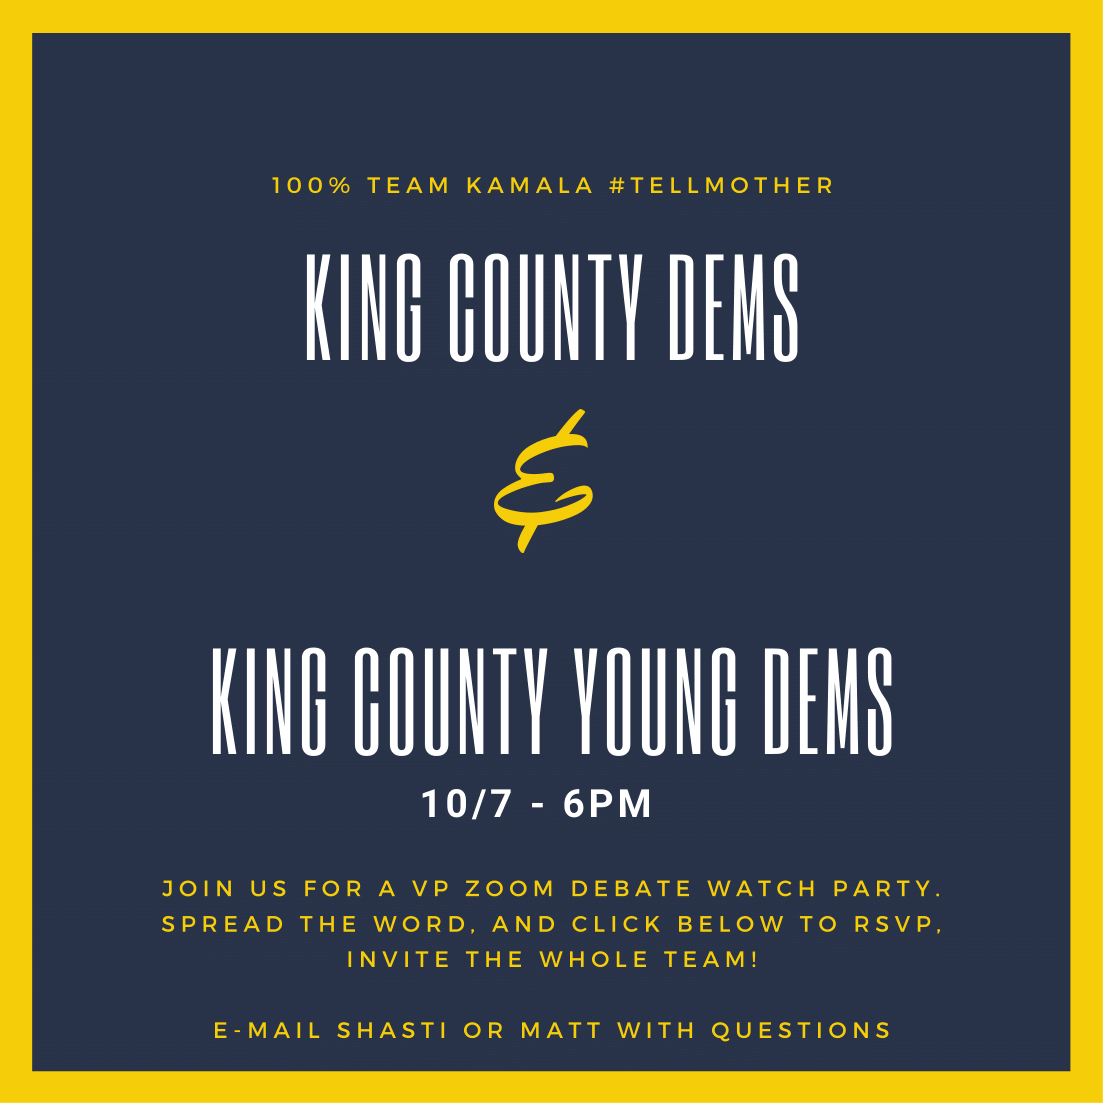 King County Dems & King County Young Dems, October 7th at 6 PM. Join us for a VP Zoom debate watch party. Spread the word, and click below to RSVP. Invite the whole team! Email Shasti or Matt with questions. 100% Team Kamala # tell mother